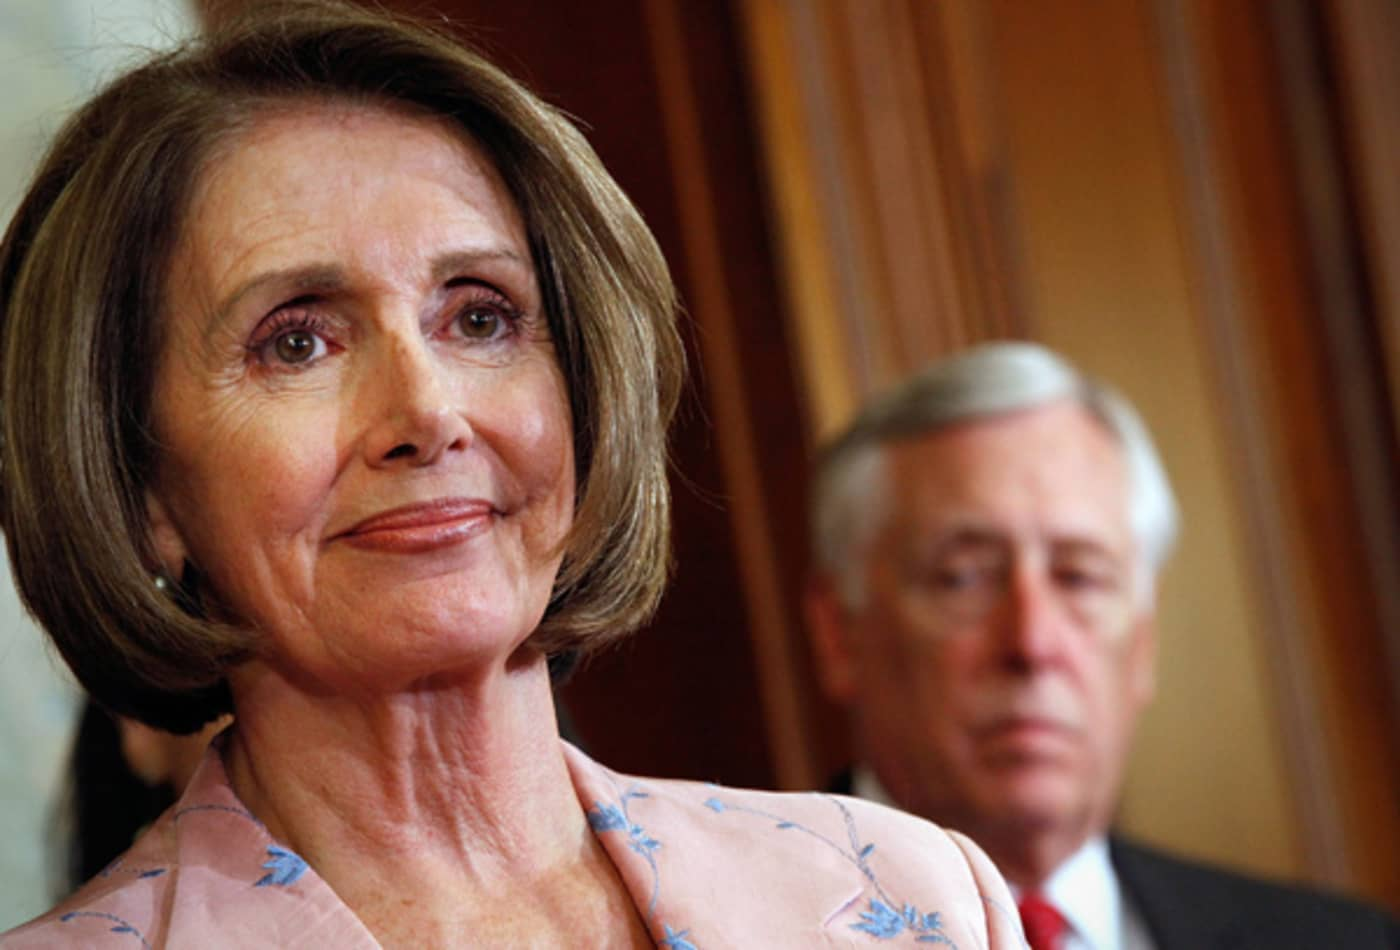 SS_richest_members_congress_2011_pelosi.jpg